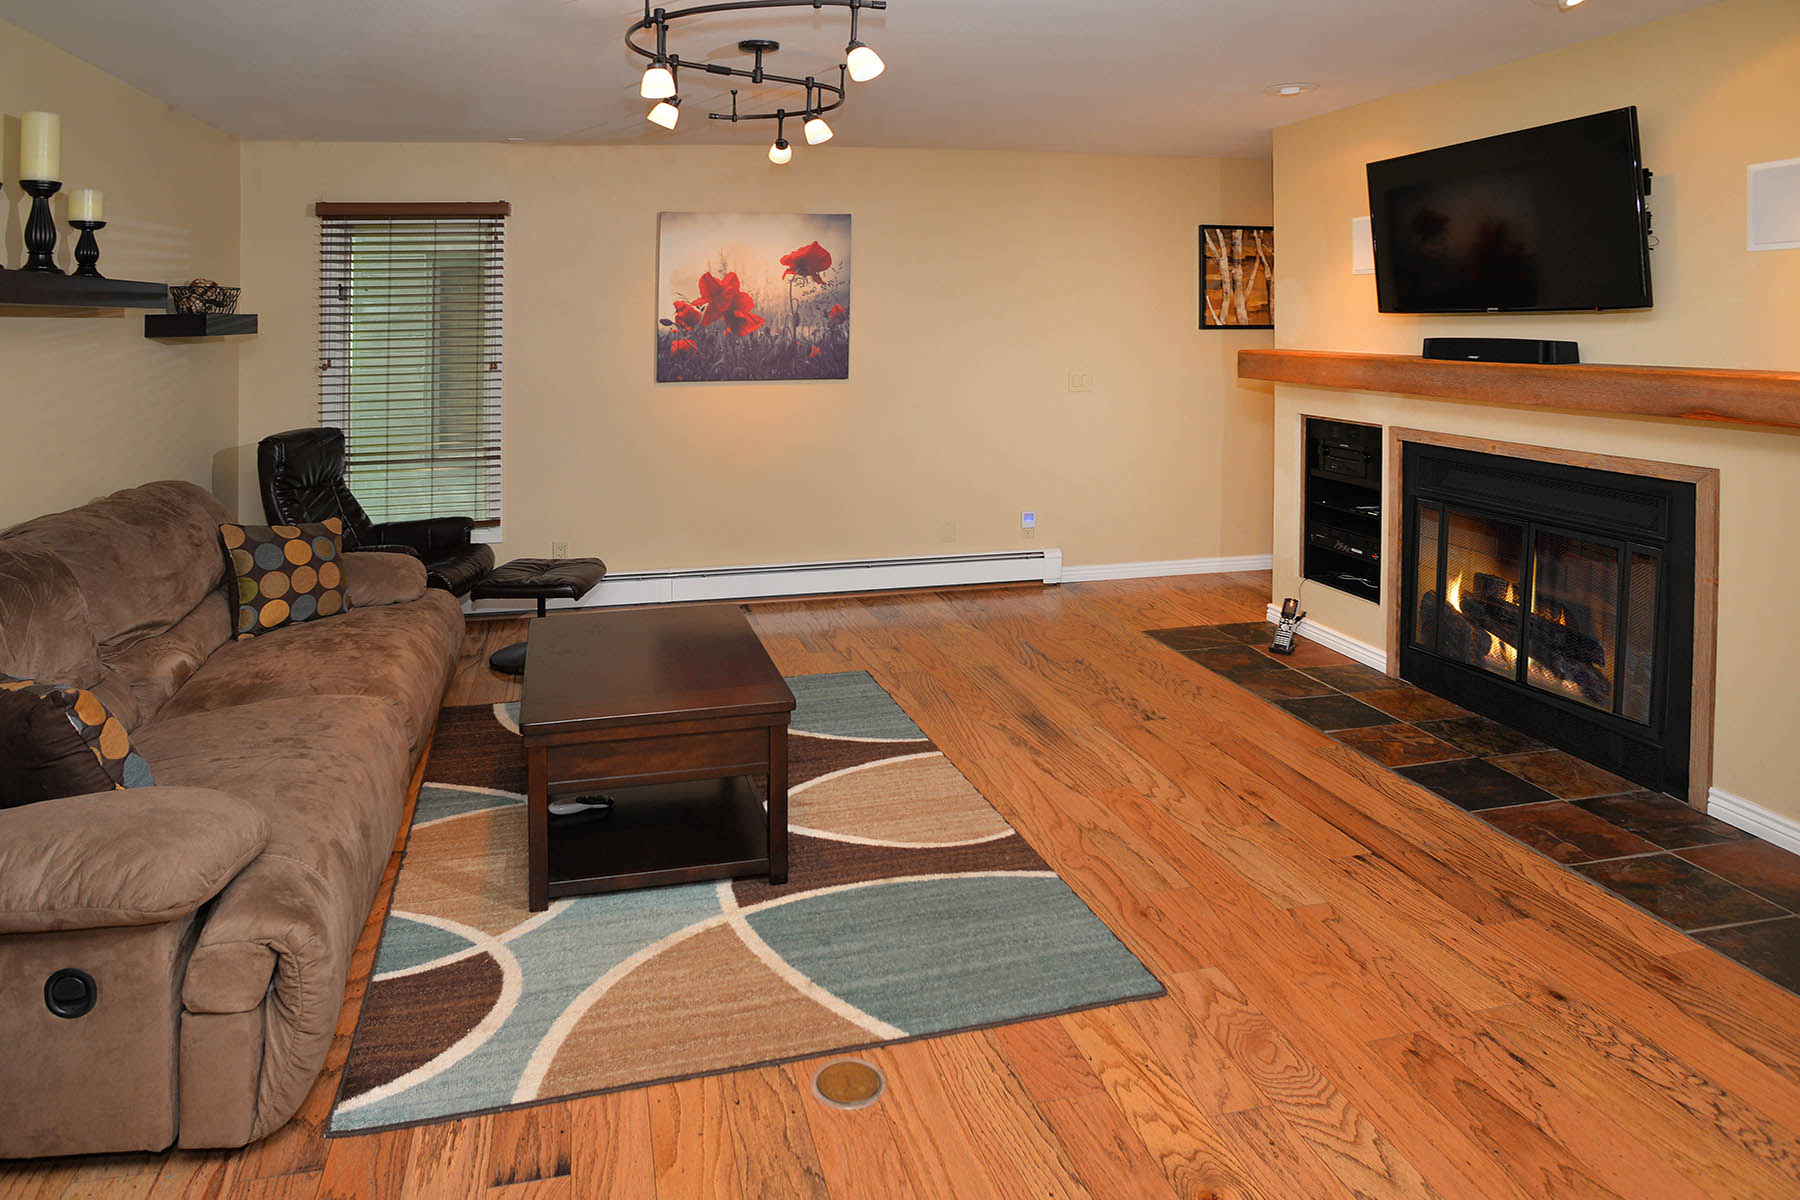 Property For Sale at Immaculate 2 Bedroom Condo in EagleVail